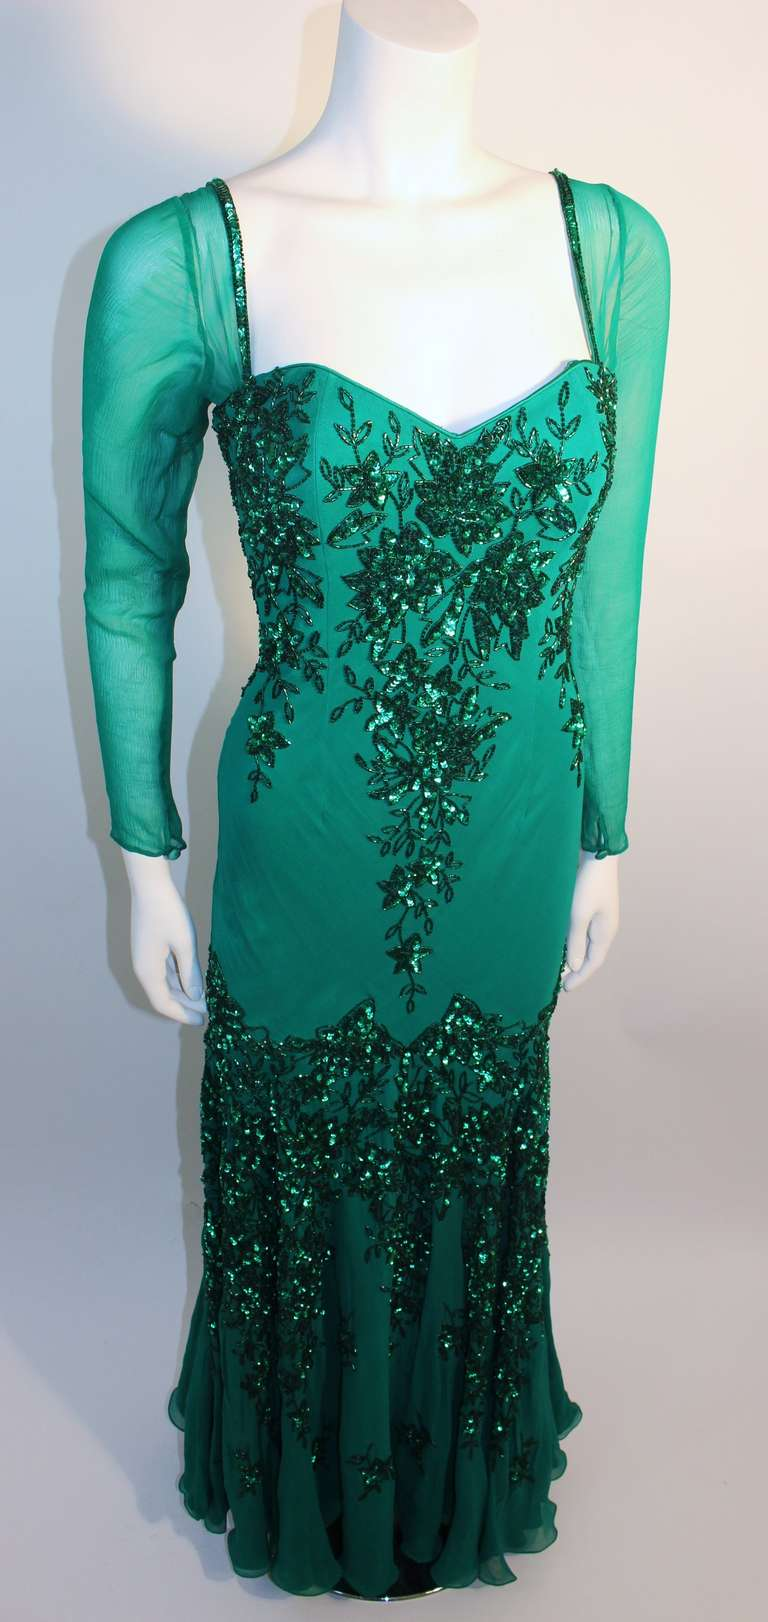 Stunning Eavis And Brown London Emerald Green Gown With